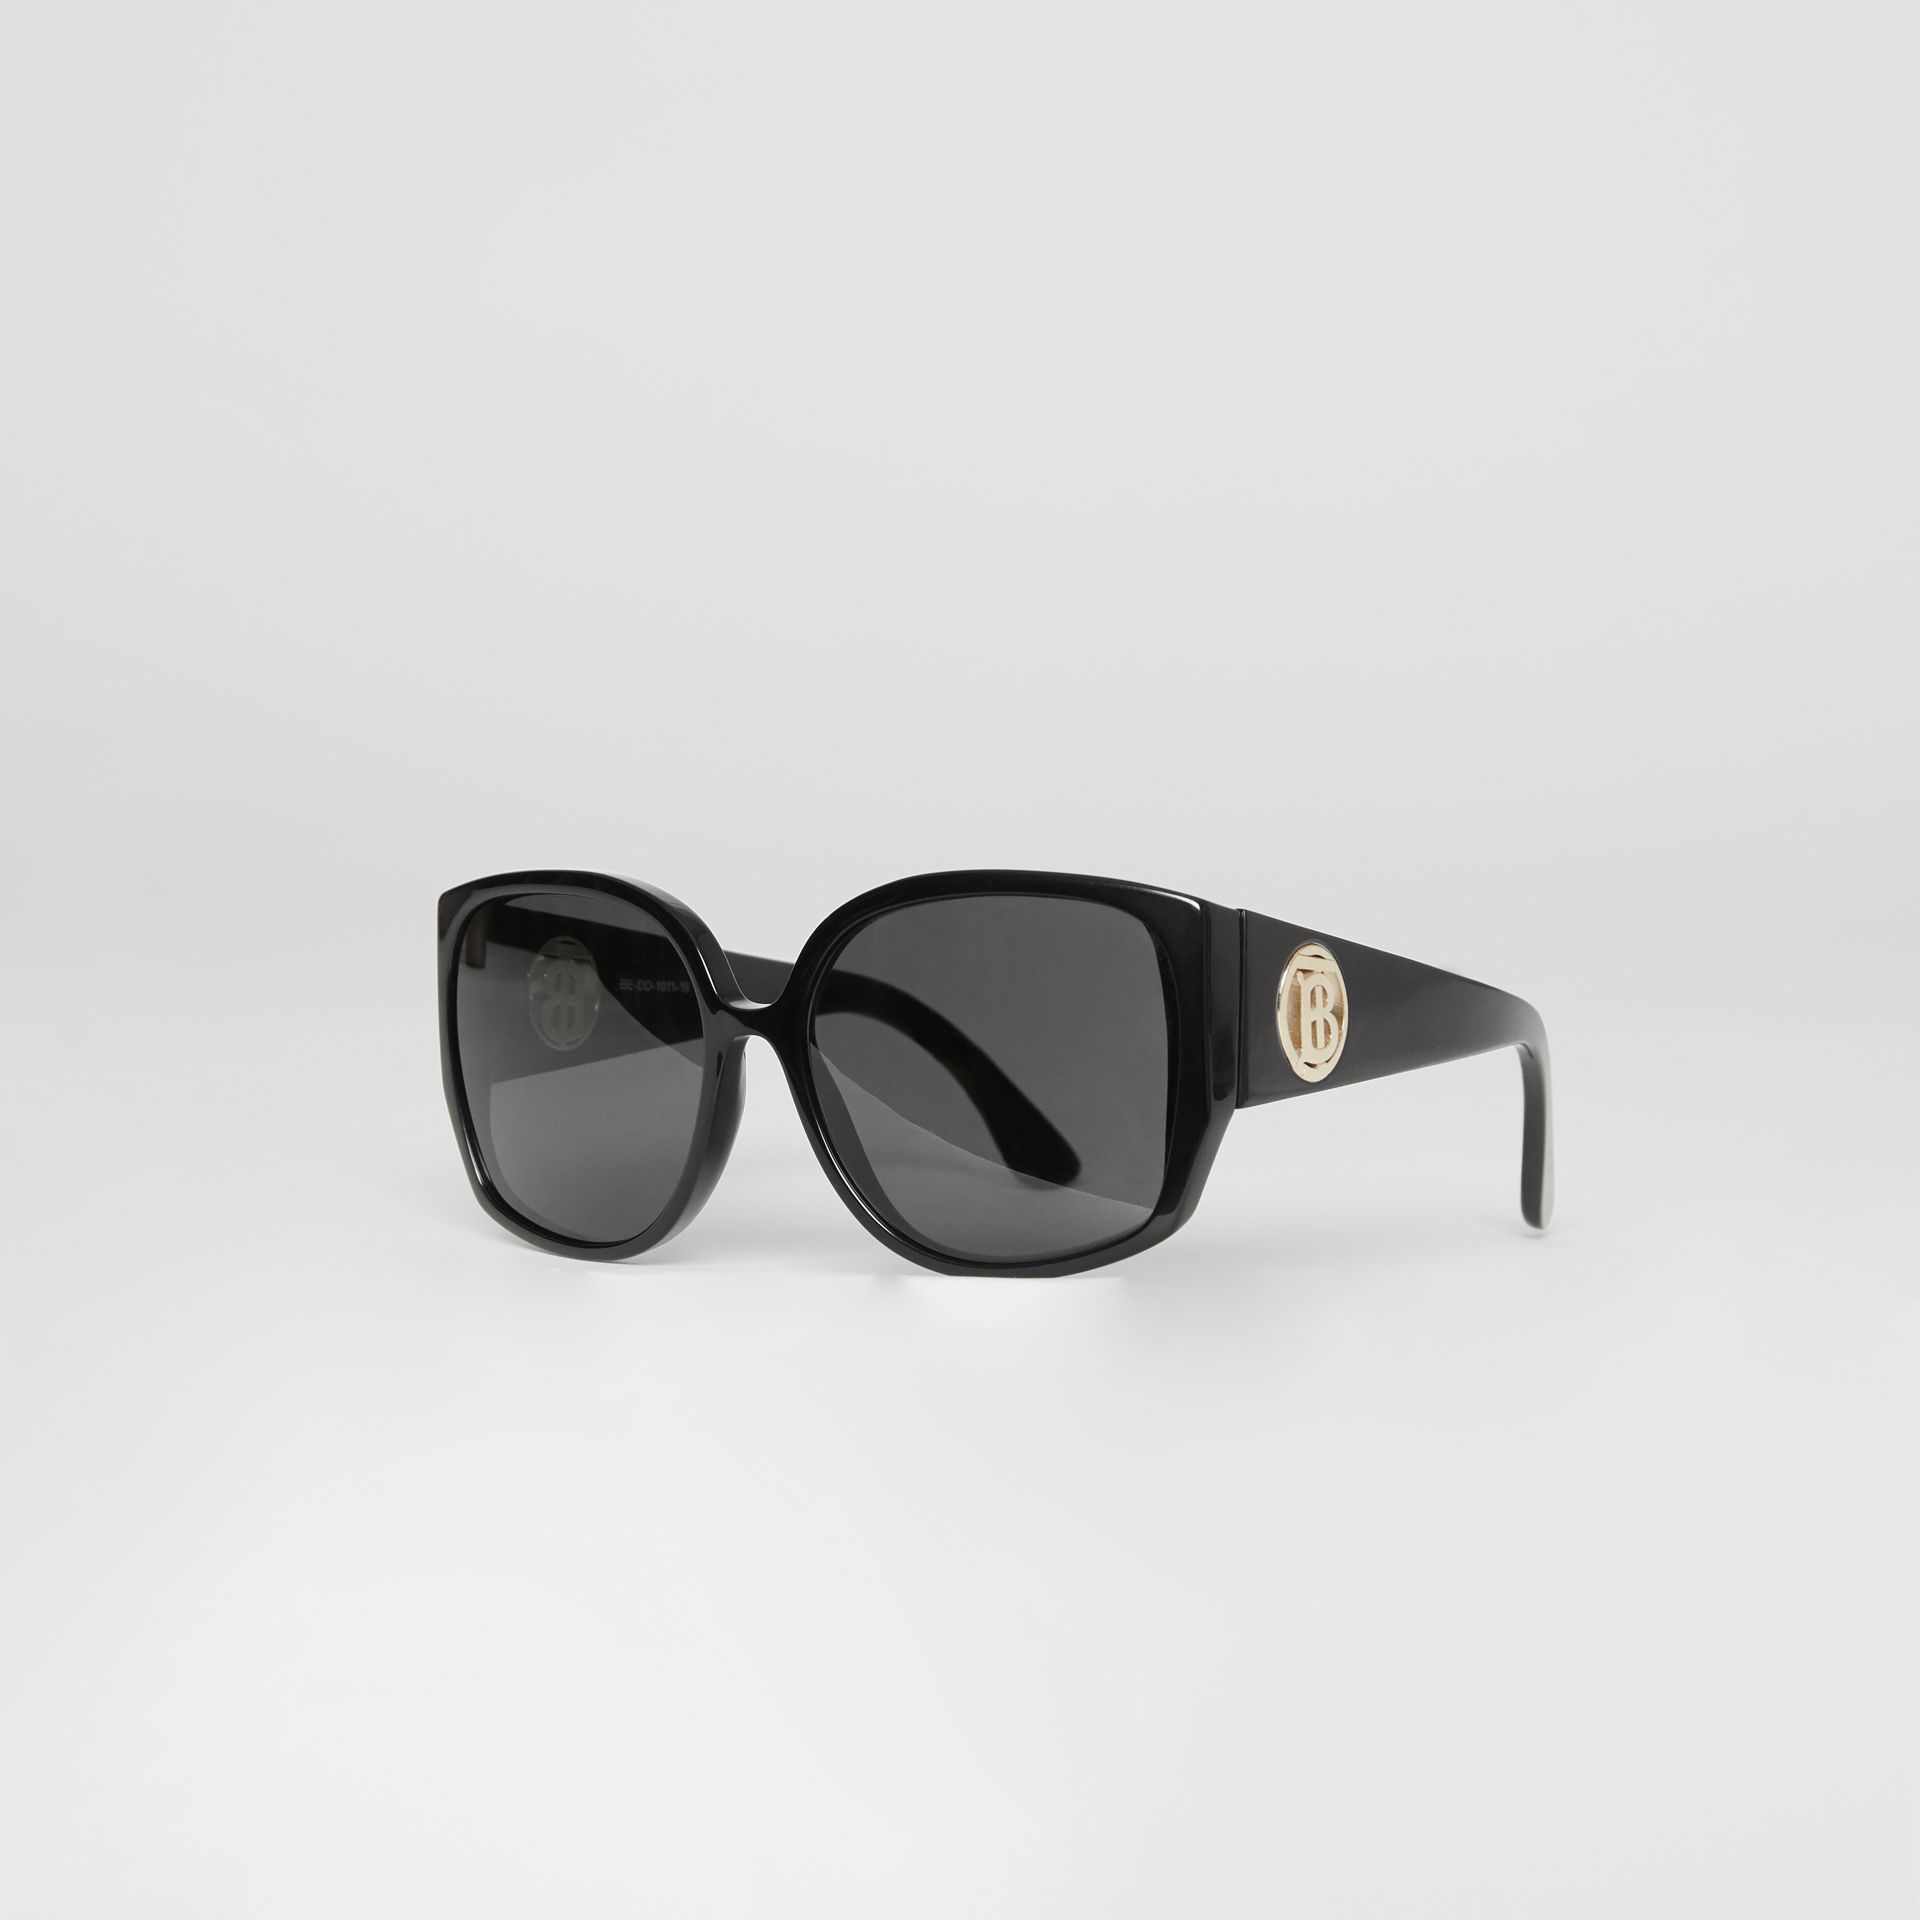 Monogram Detail Round Frame Sunglasses in Black - Women | Burberry - gallery image 3